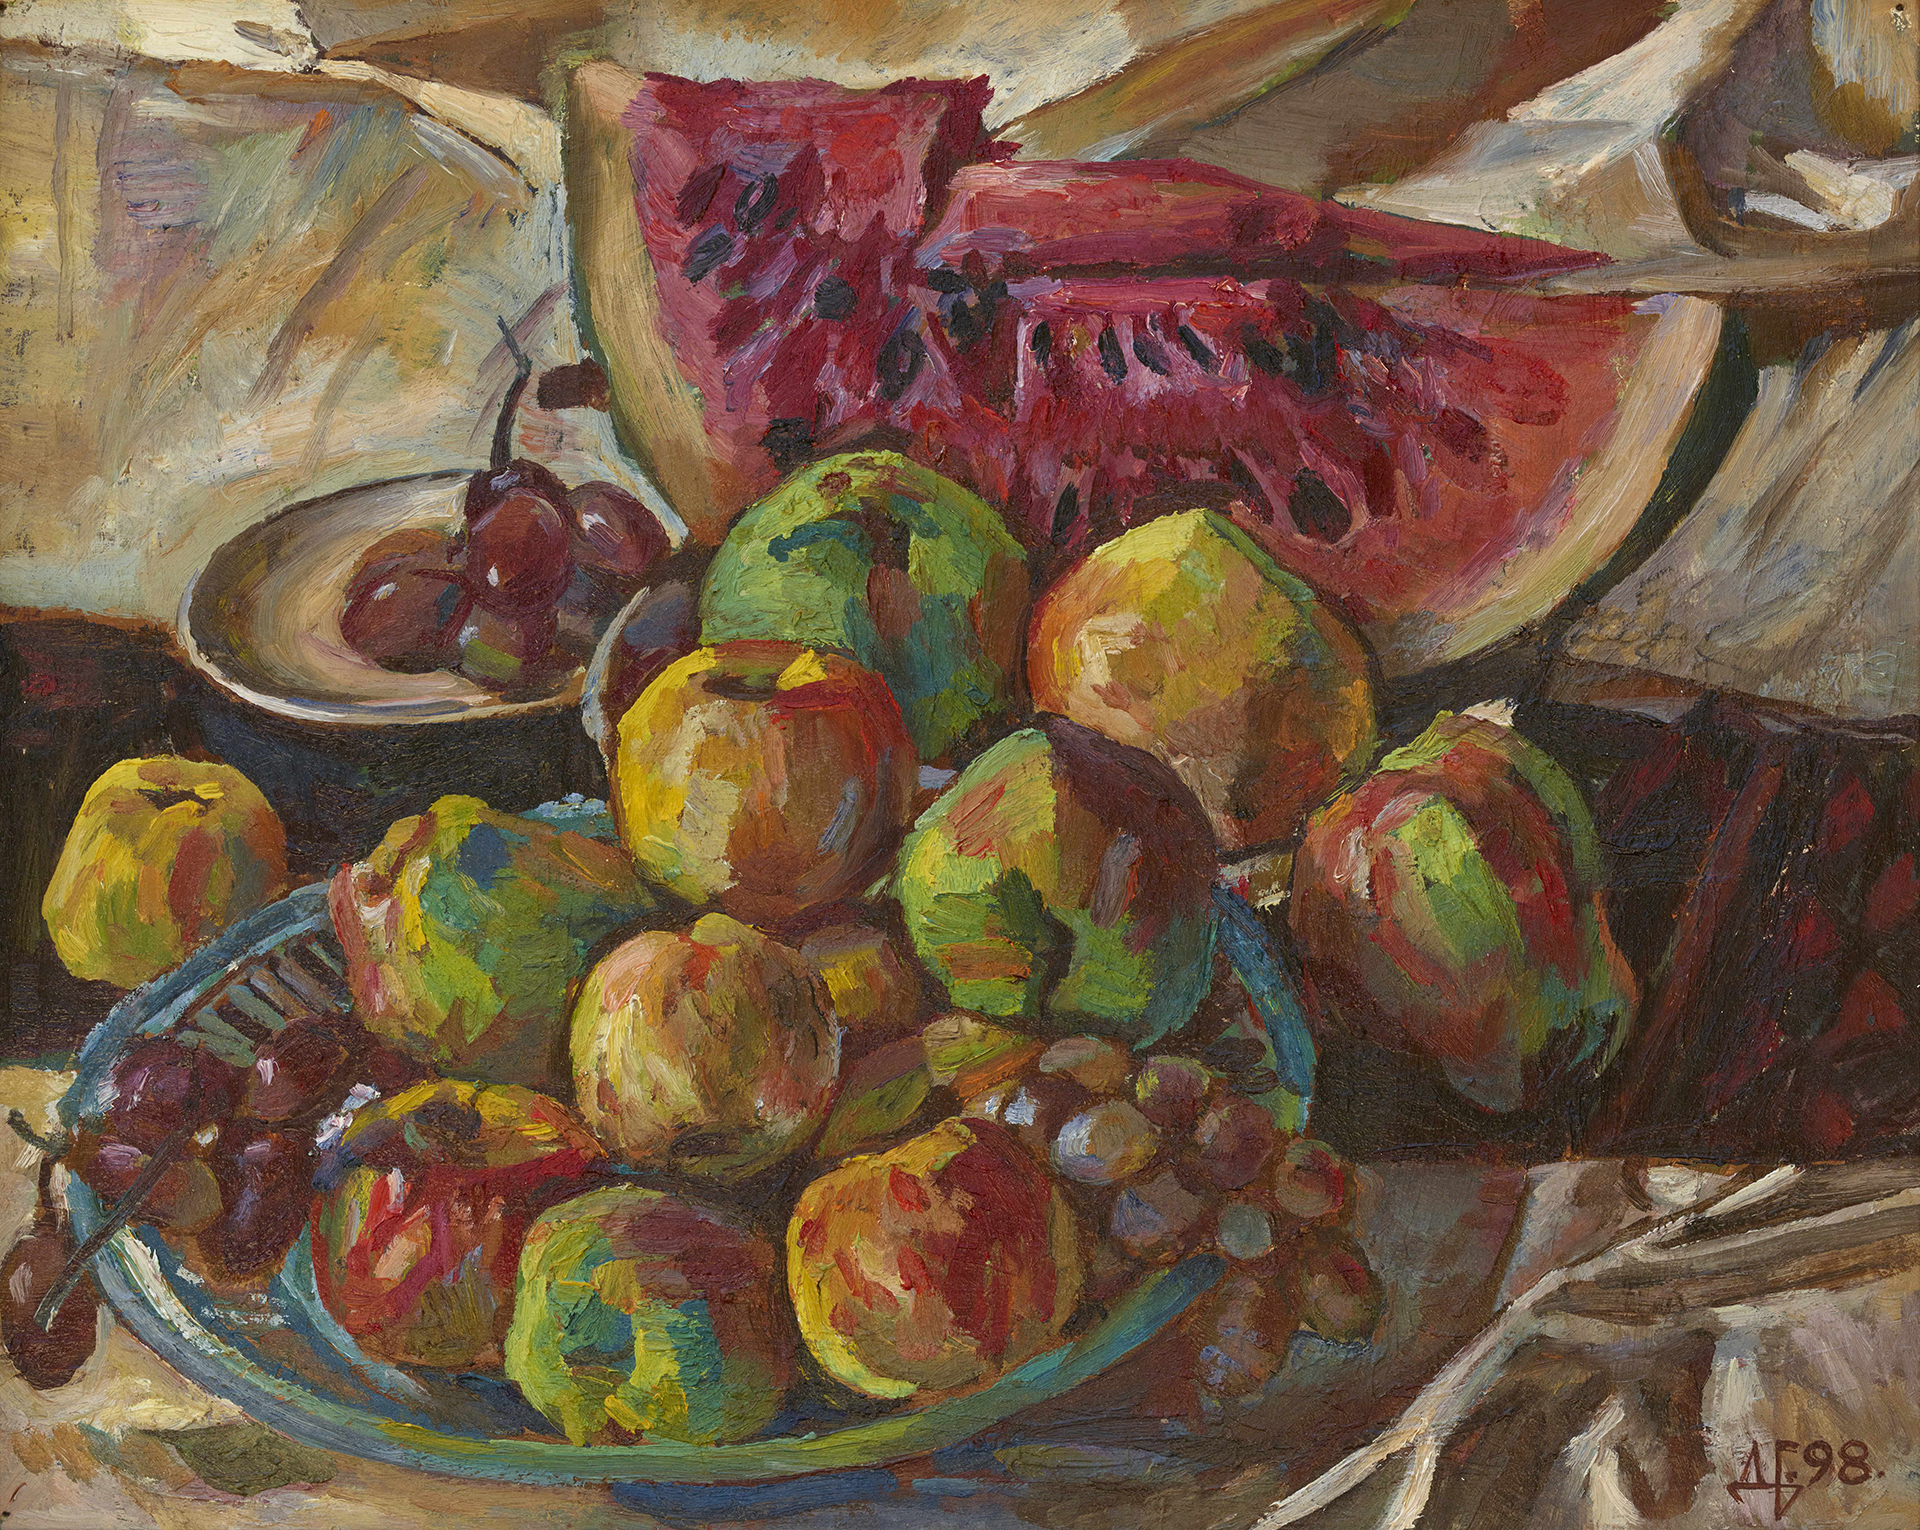 Watermelon, Grapes and Apples